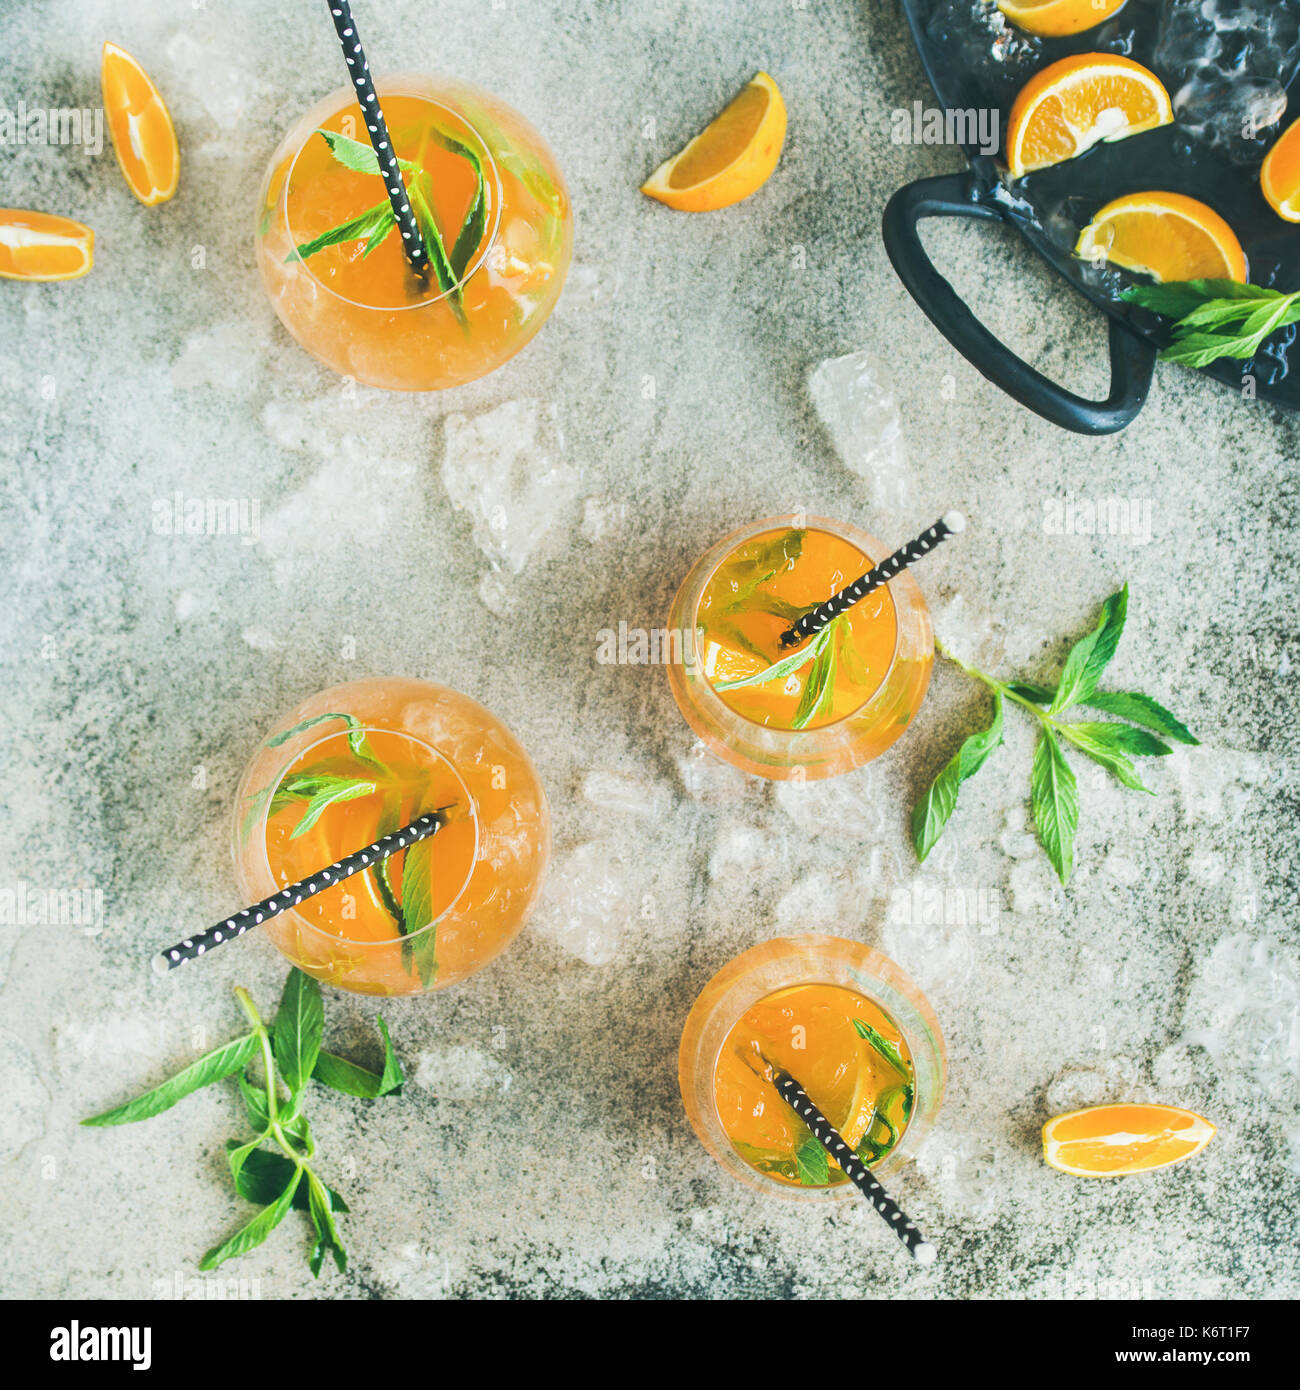 Refreshing alcoholic summer cocktail in glasses, concrete background, square crop - Stock Image